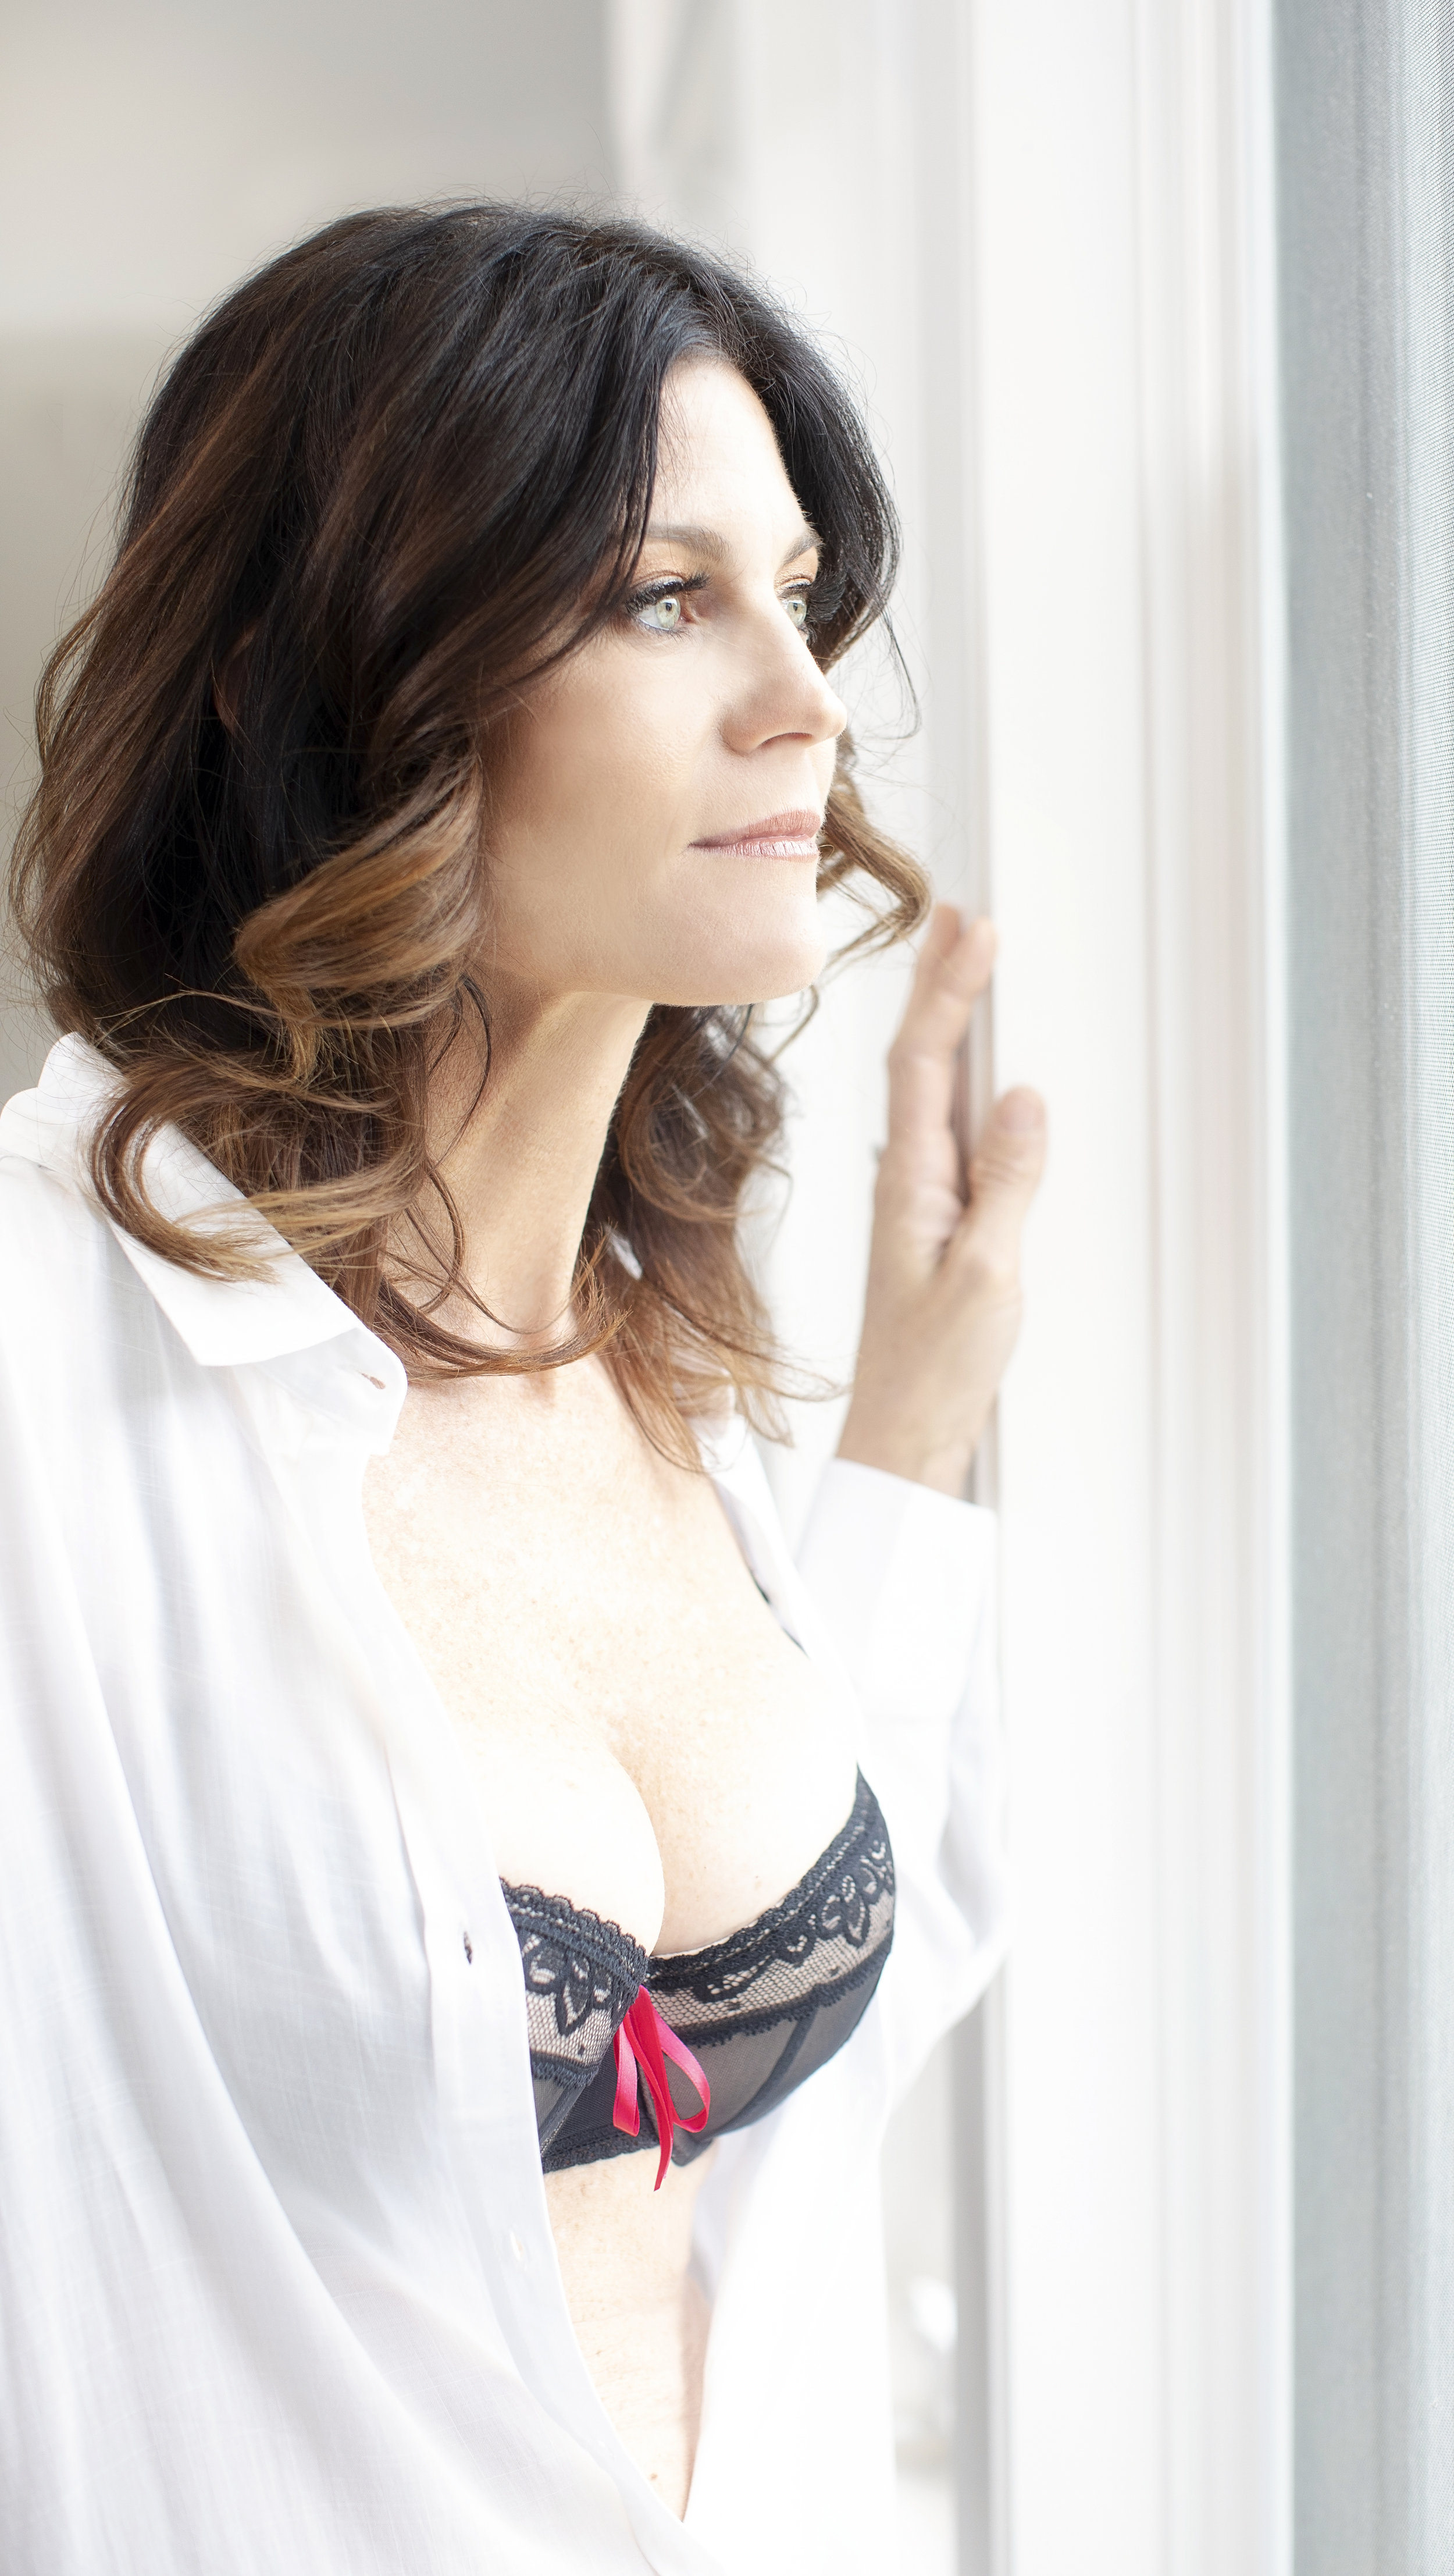 Boudoir session of a woman in black lingerie and a white shirt looking out of the window.